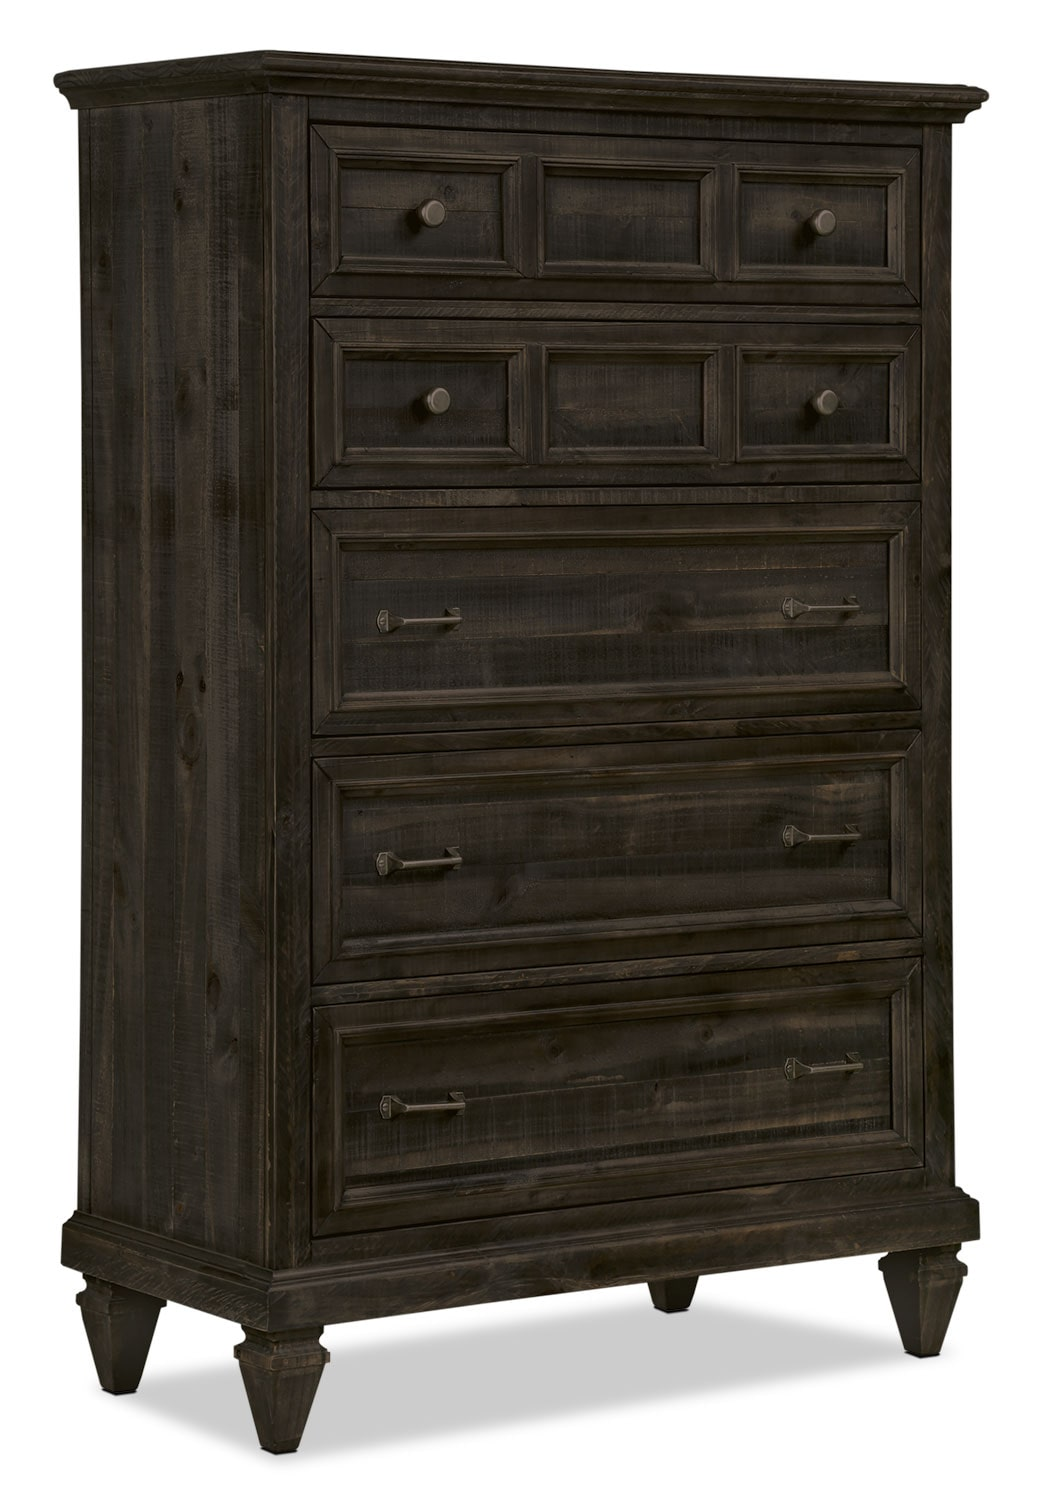 Calistoga Chest - Weathered Charcoal